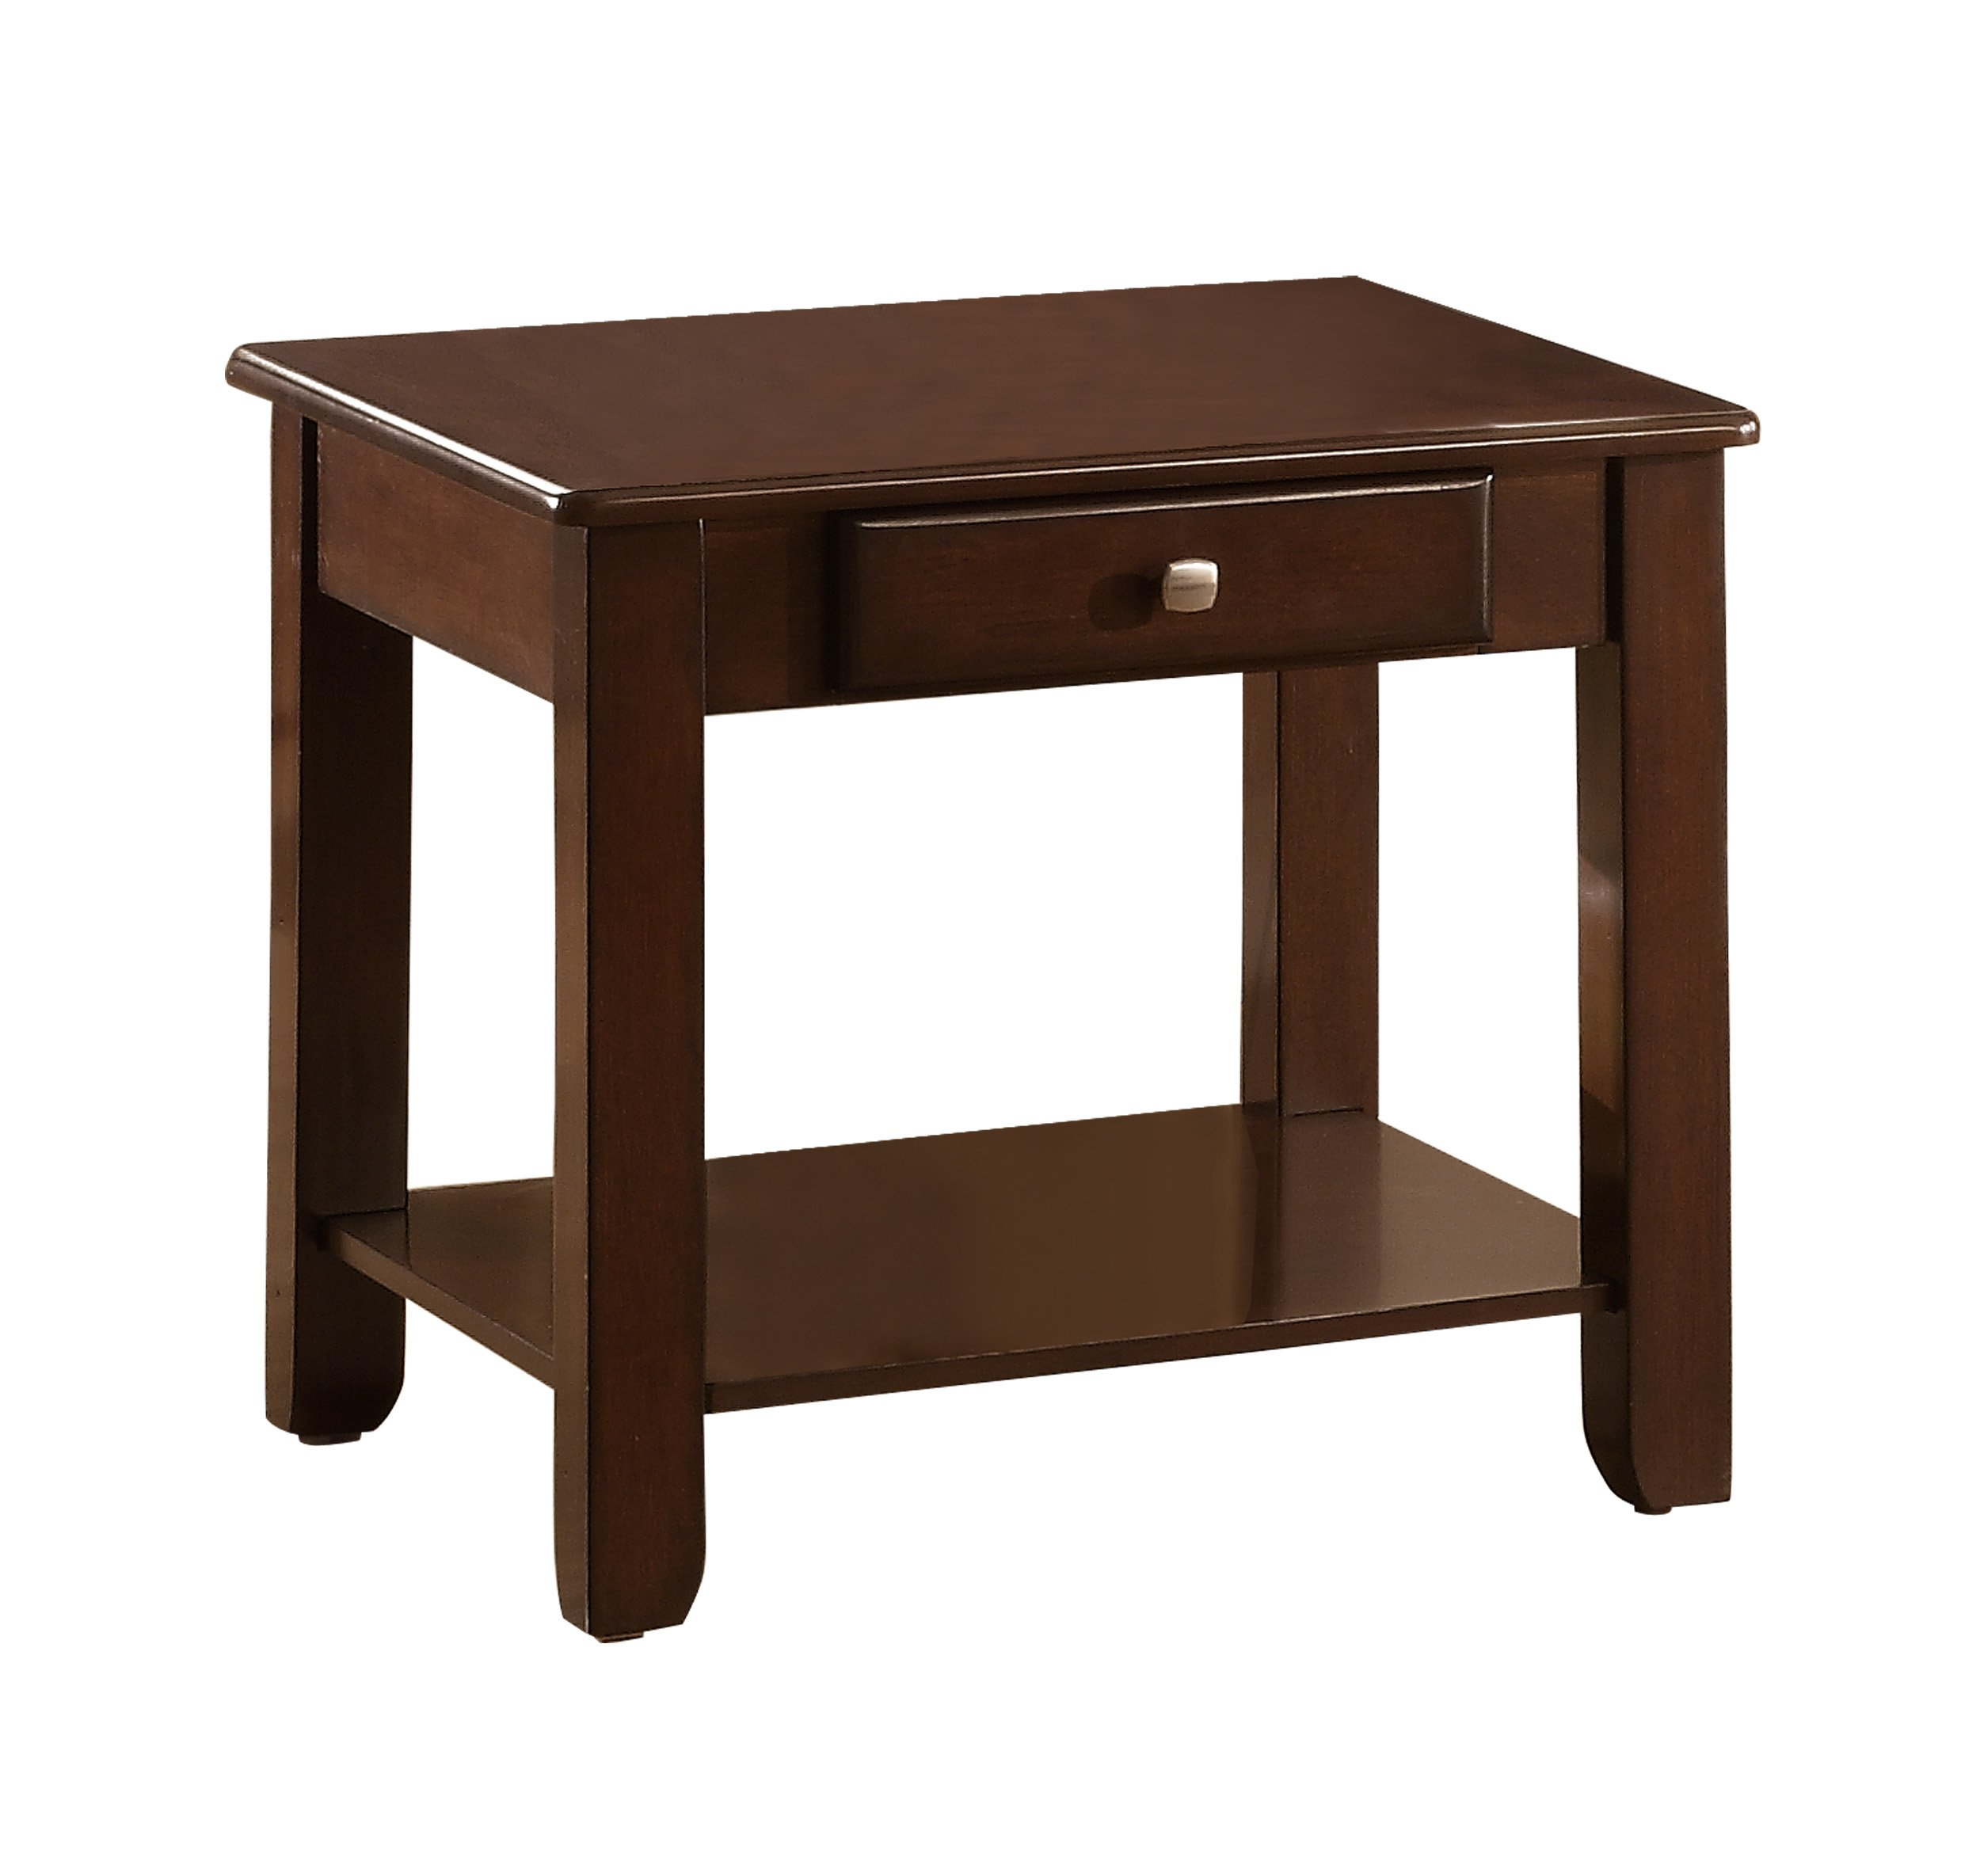 Homelegance Carrier End Table with Lower Shelf & Drawer, Cherry